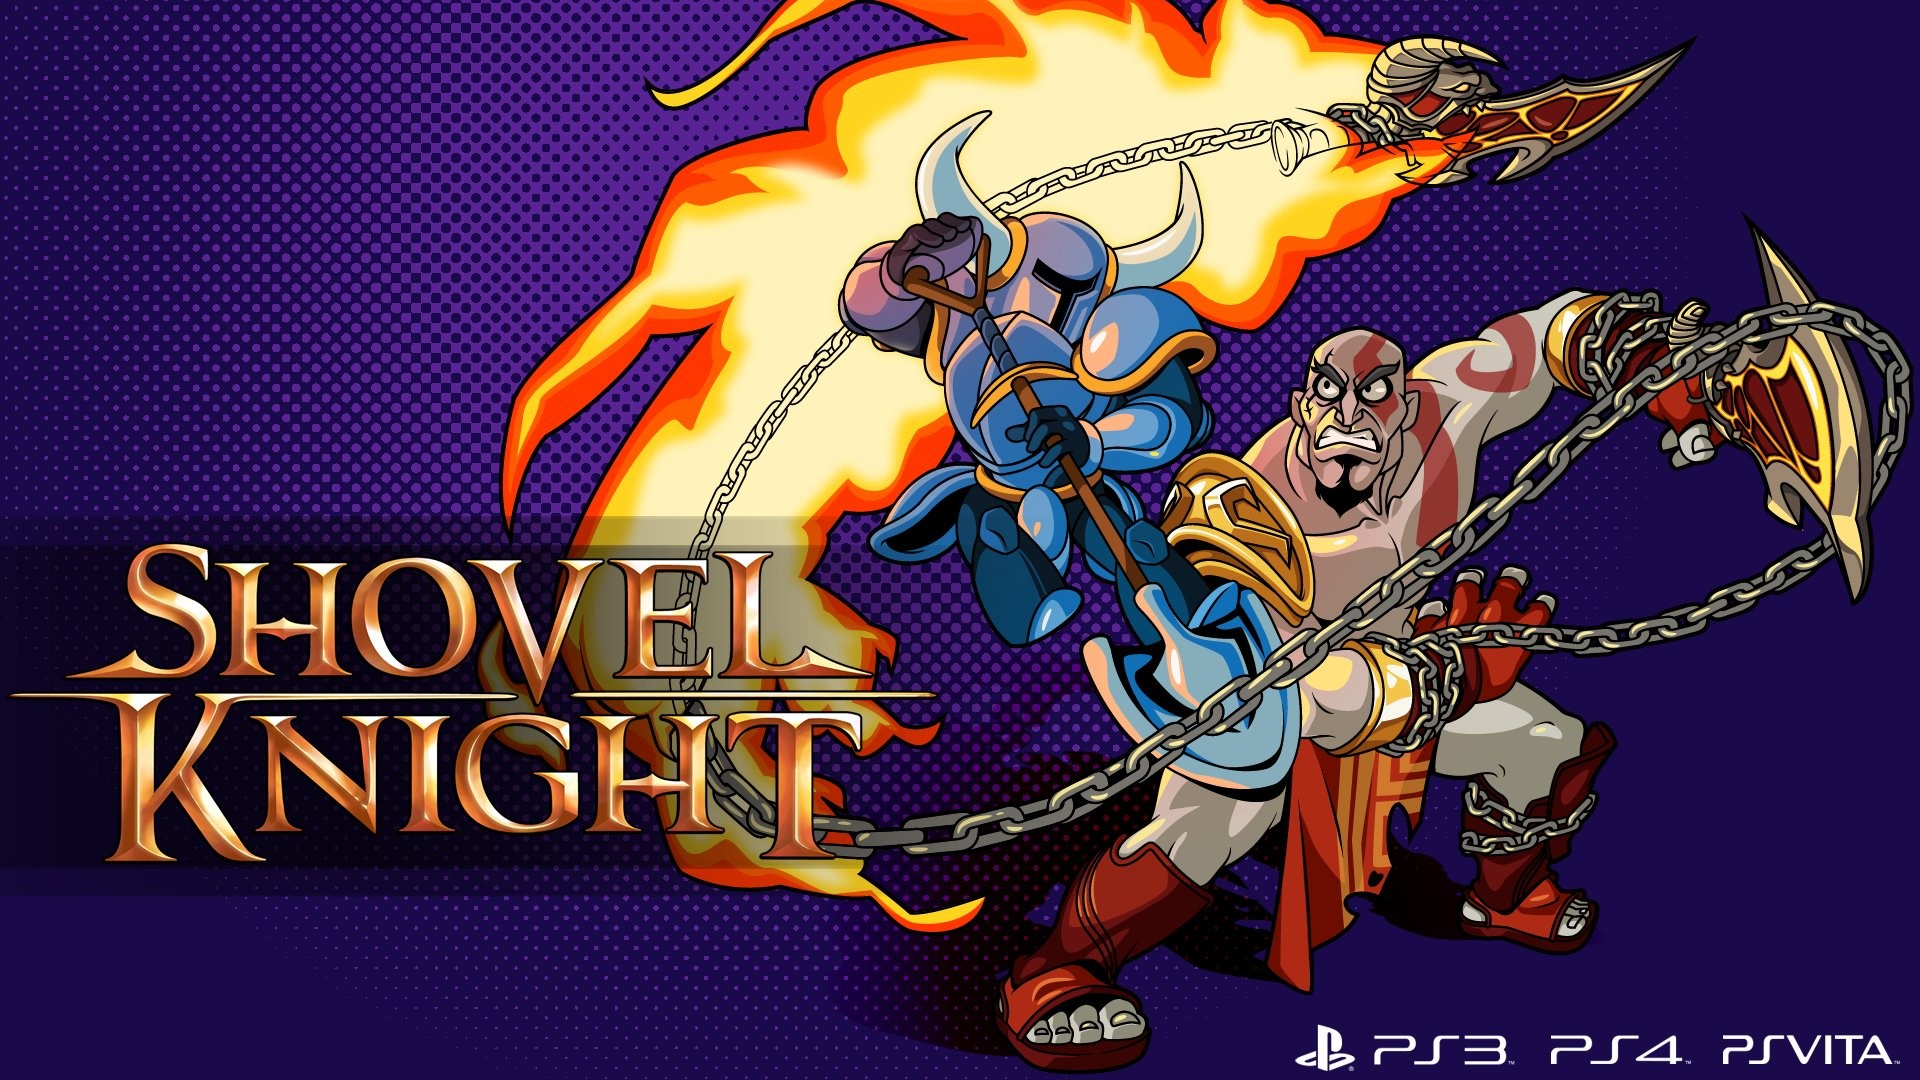 Shovel Knight Wallpaper Hd 89 Images